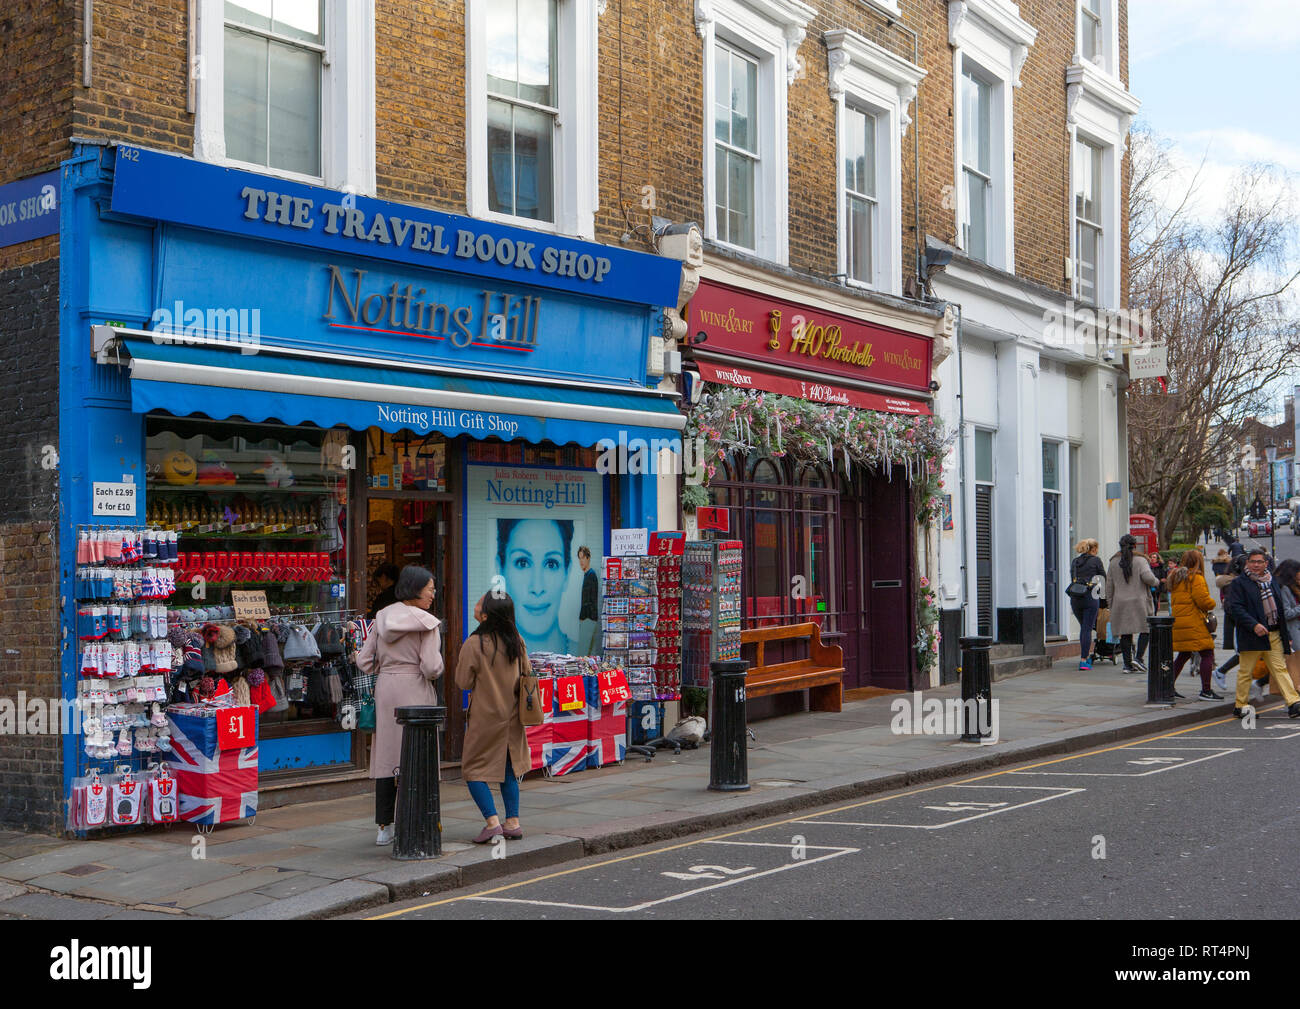 The Travel Book Shop, Portobello Road, Notting Hill, London;  location for the film 'Notting Hill' - Stock Image